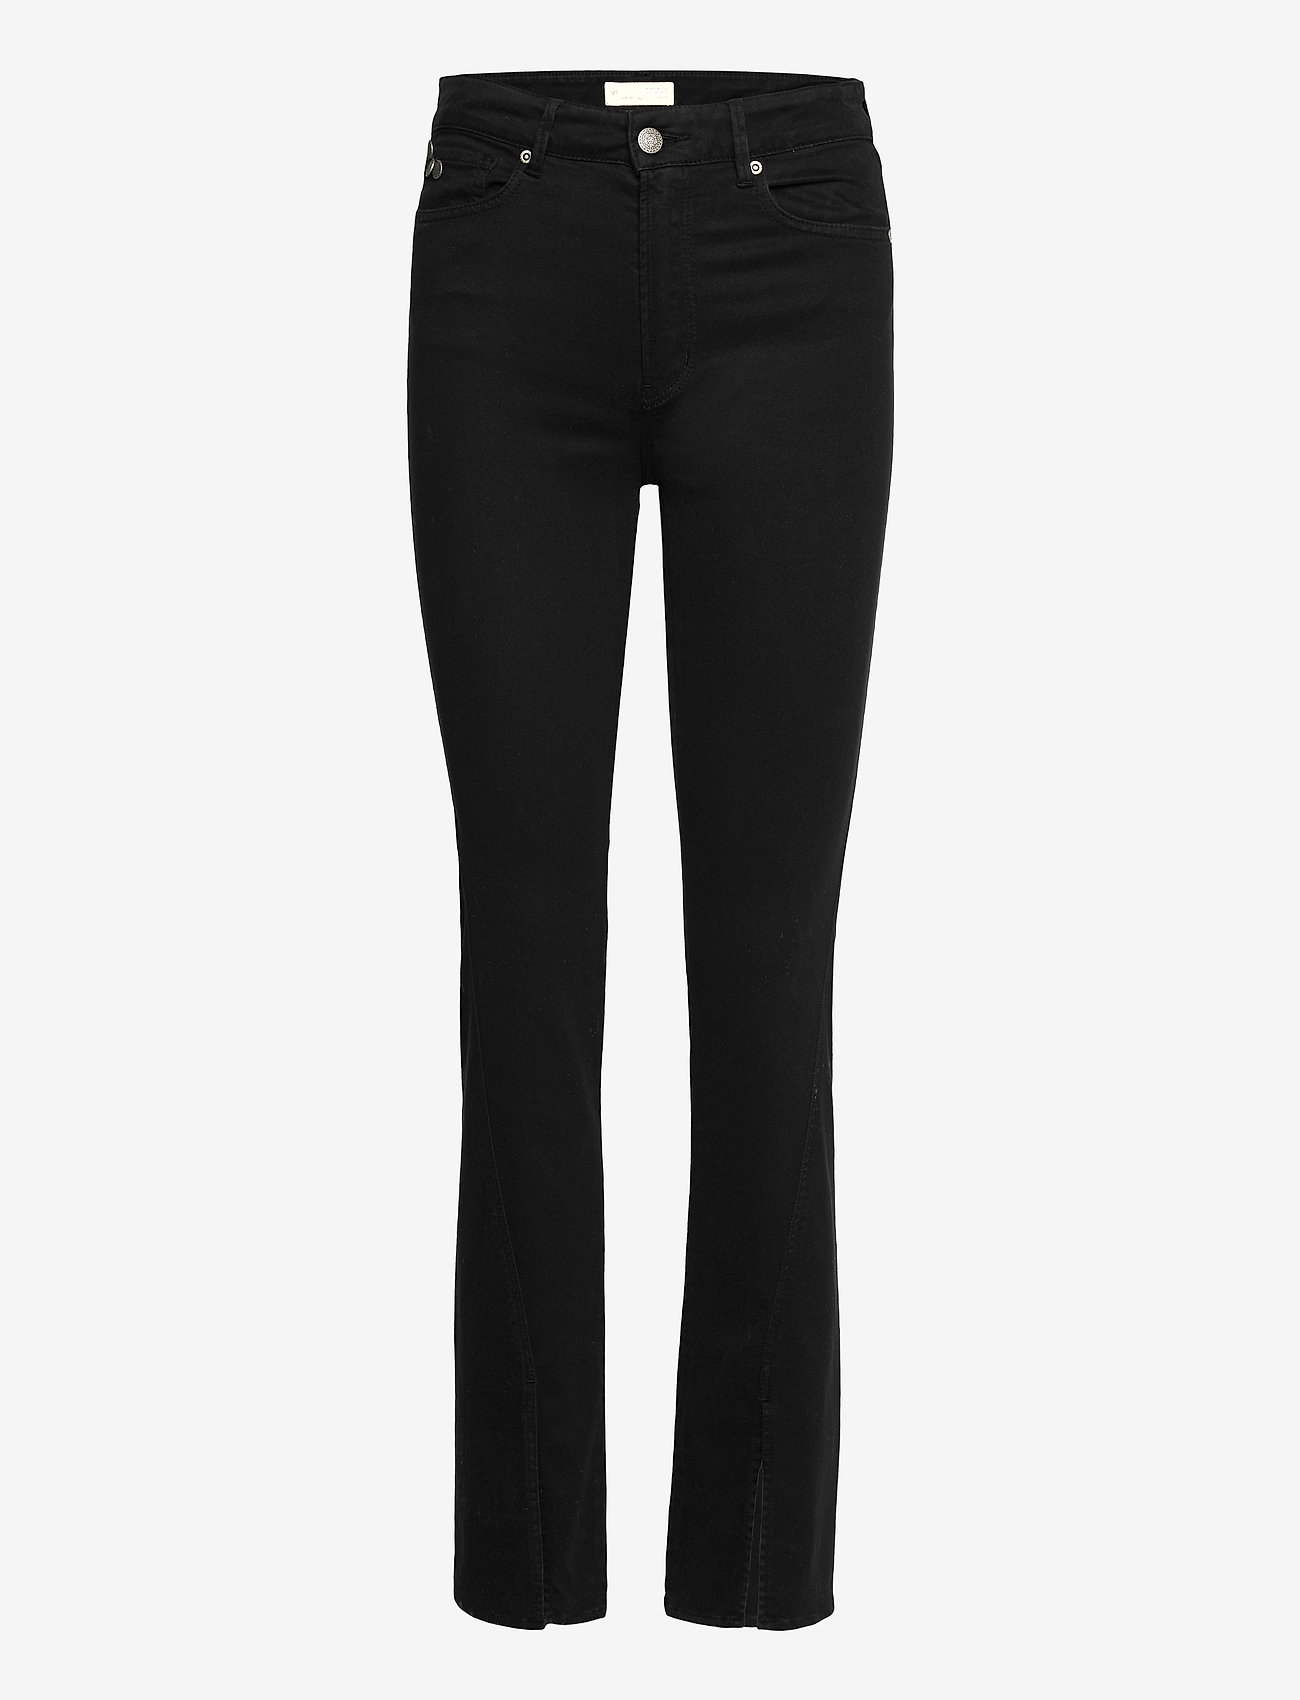 ODD MOLLY - Sheryl Pants - slim fit bukser - almost black - 1